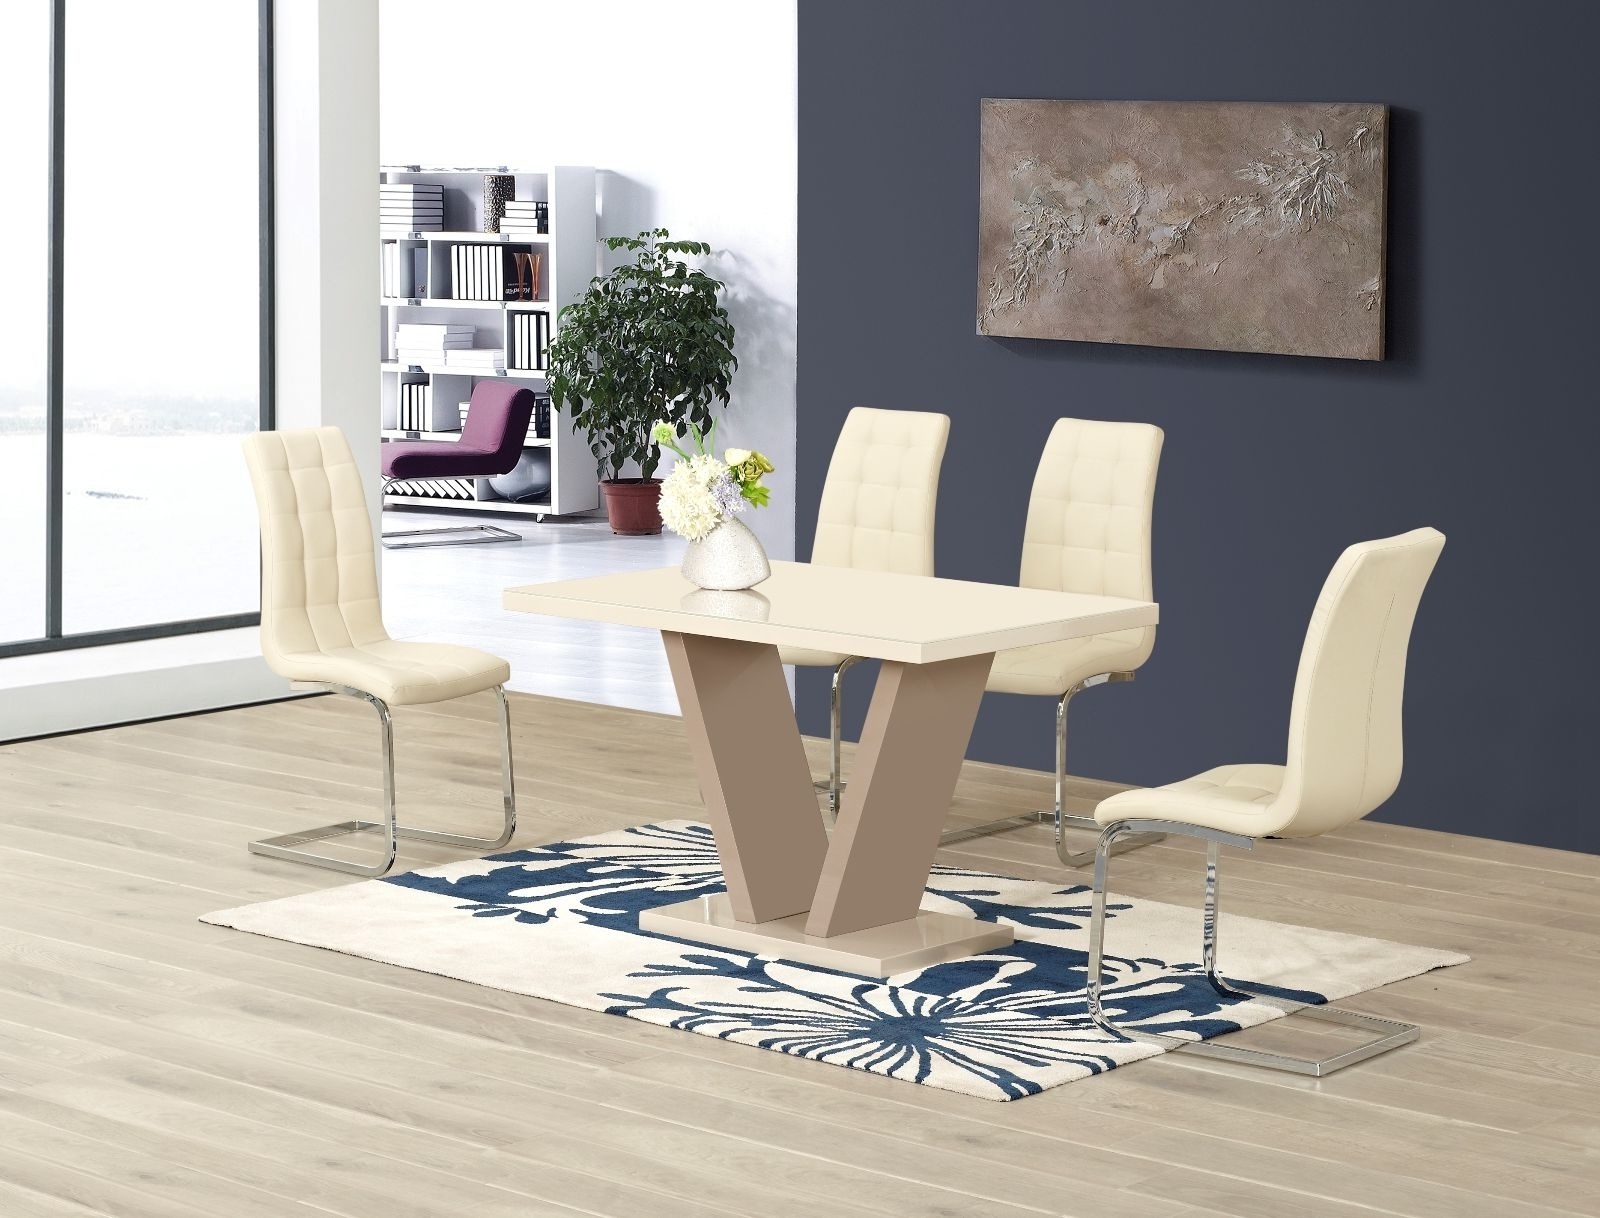 Best And Newest Ga Vico Cream Gloss Designer 120 Cm Dining Set & 4 Araceli Or Sicily Chairs Within Black Gloss Dining Tables And Chairs (Gallery 13 of 25)